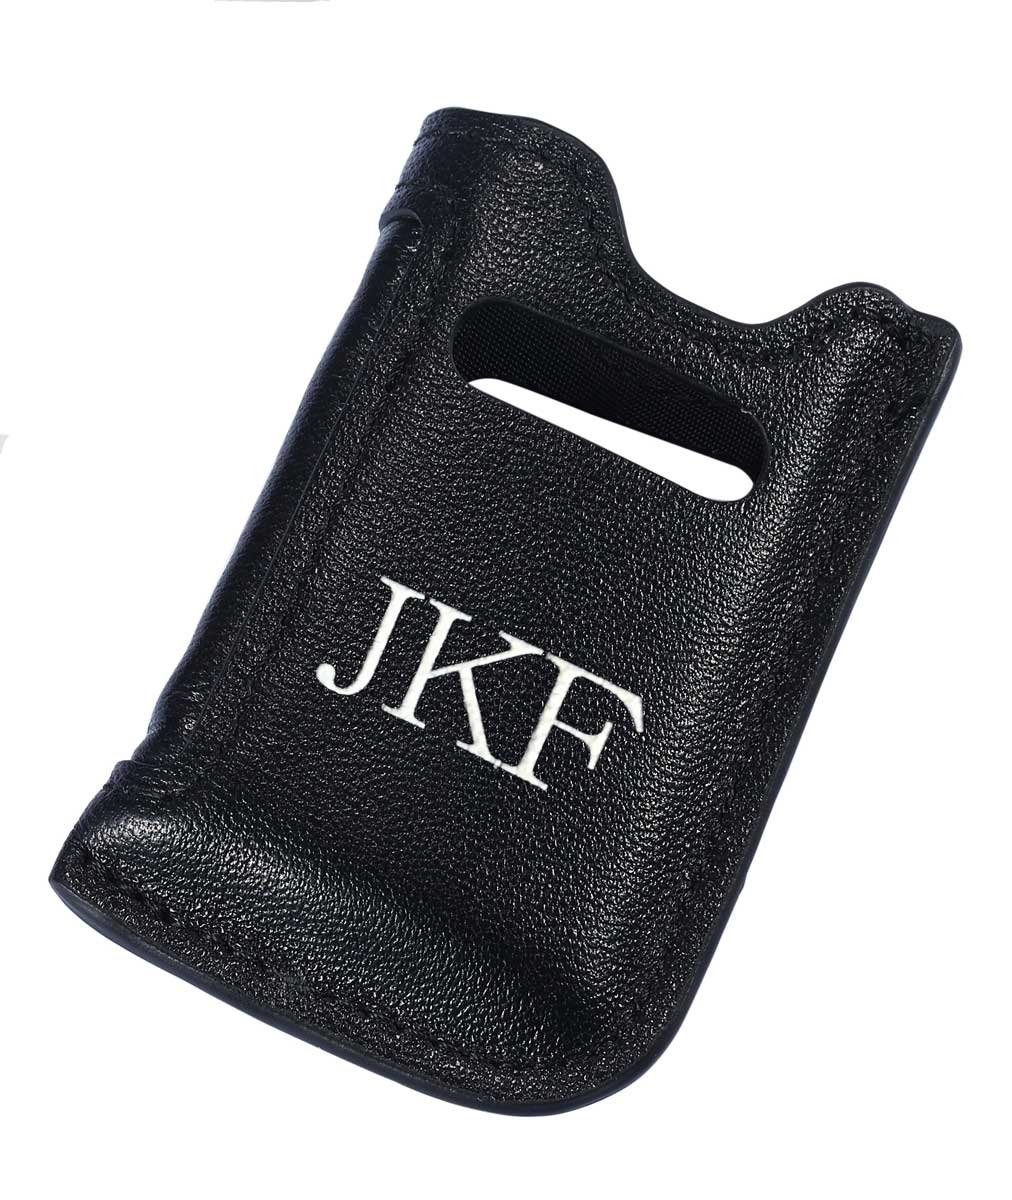 Personalized Genuine Leather Lighter Pouch for S.T. Dupont Maxijet Lighters with Free Printing